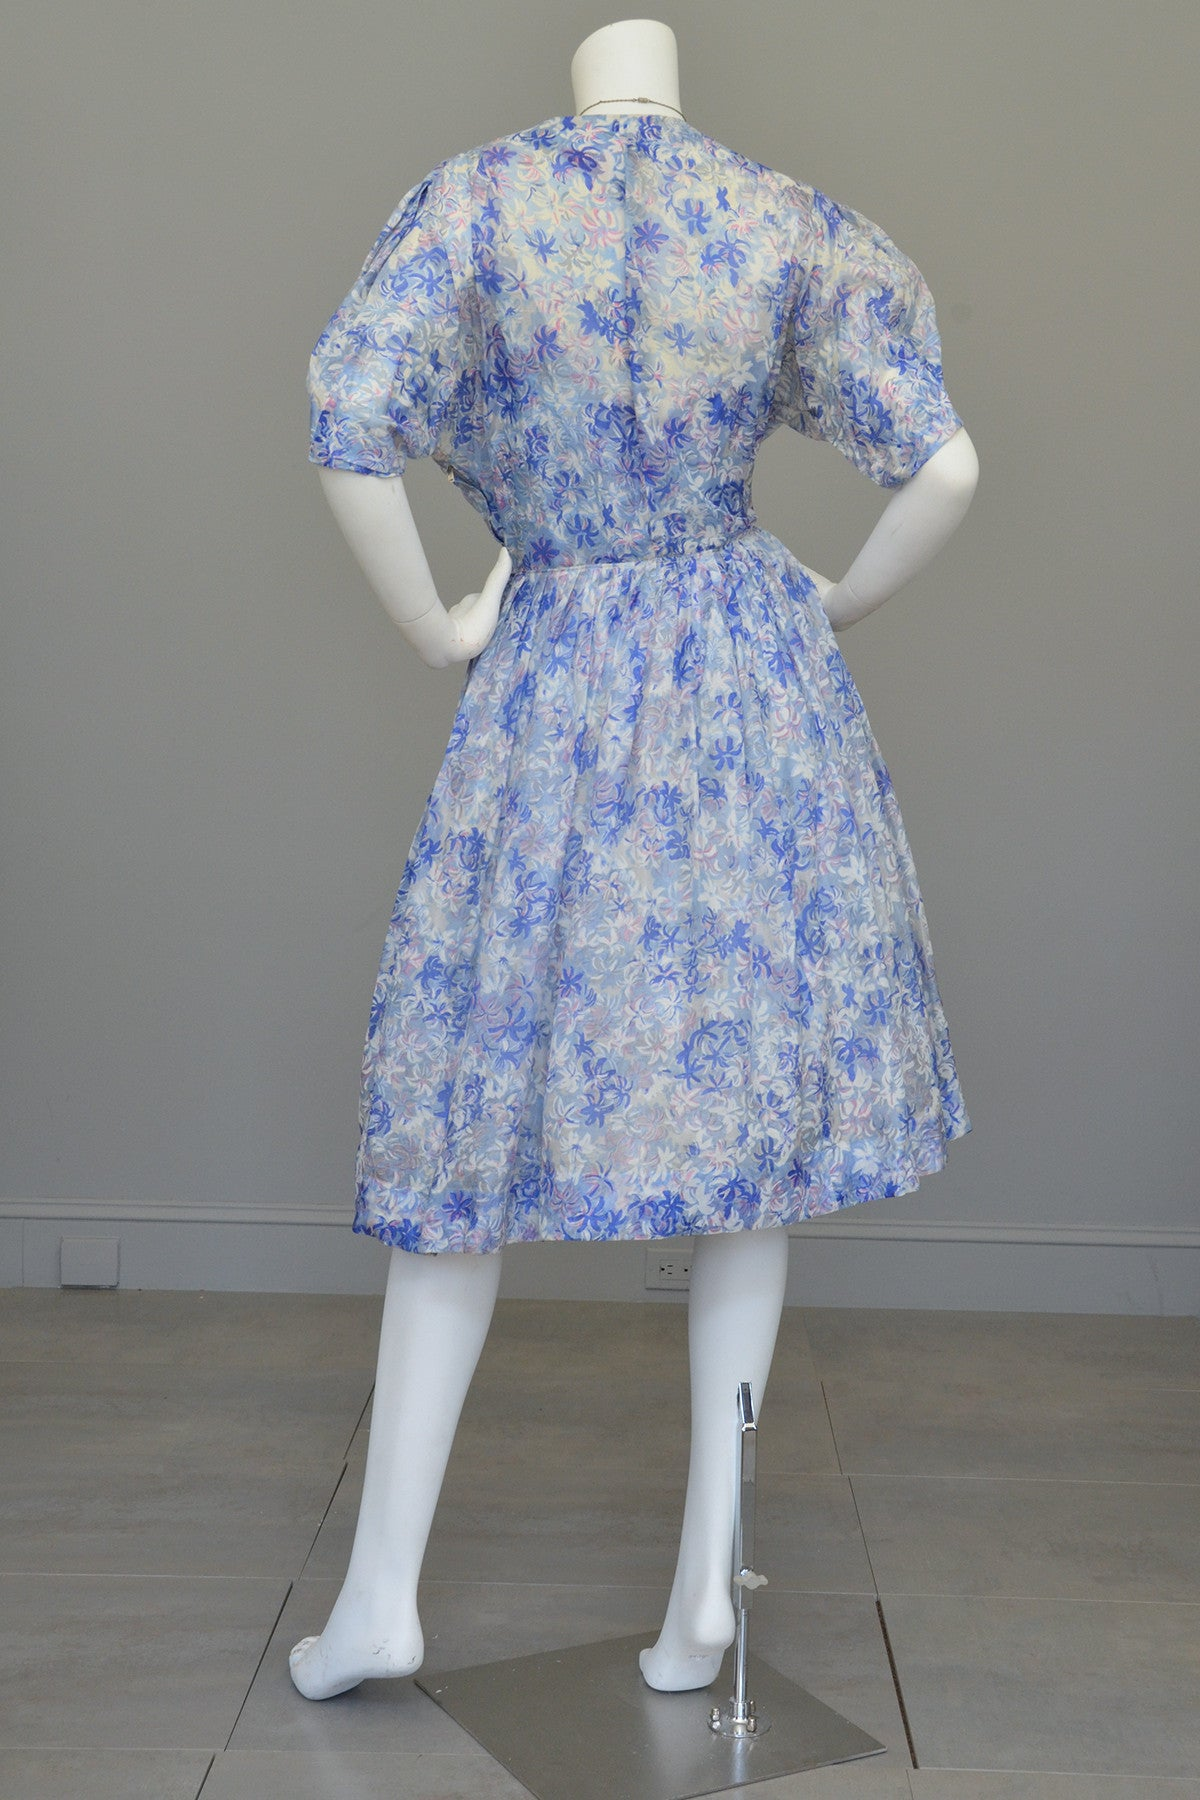 1940s 50s Semi Sheer Petal Print Two Piece Party Dress by Henry Rosenfeld